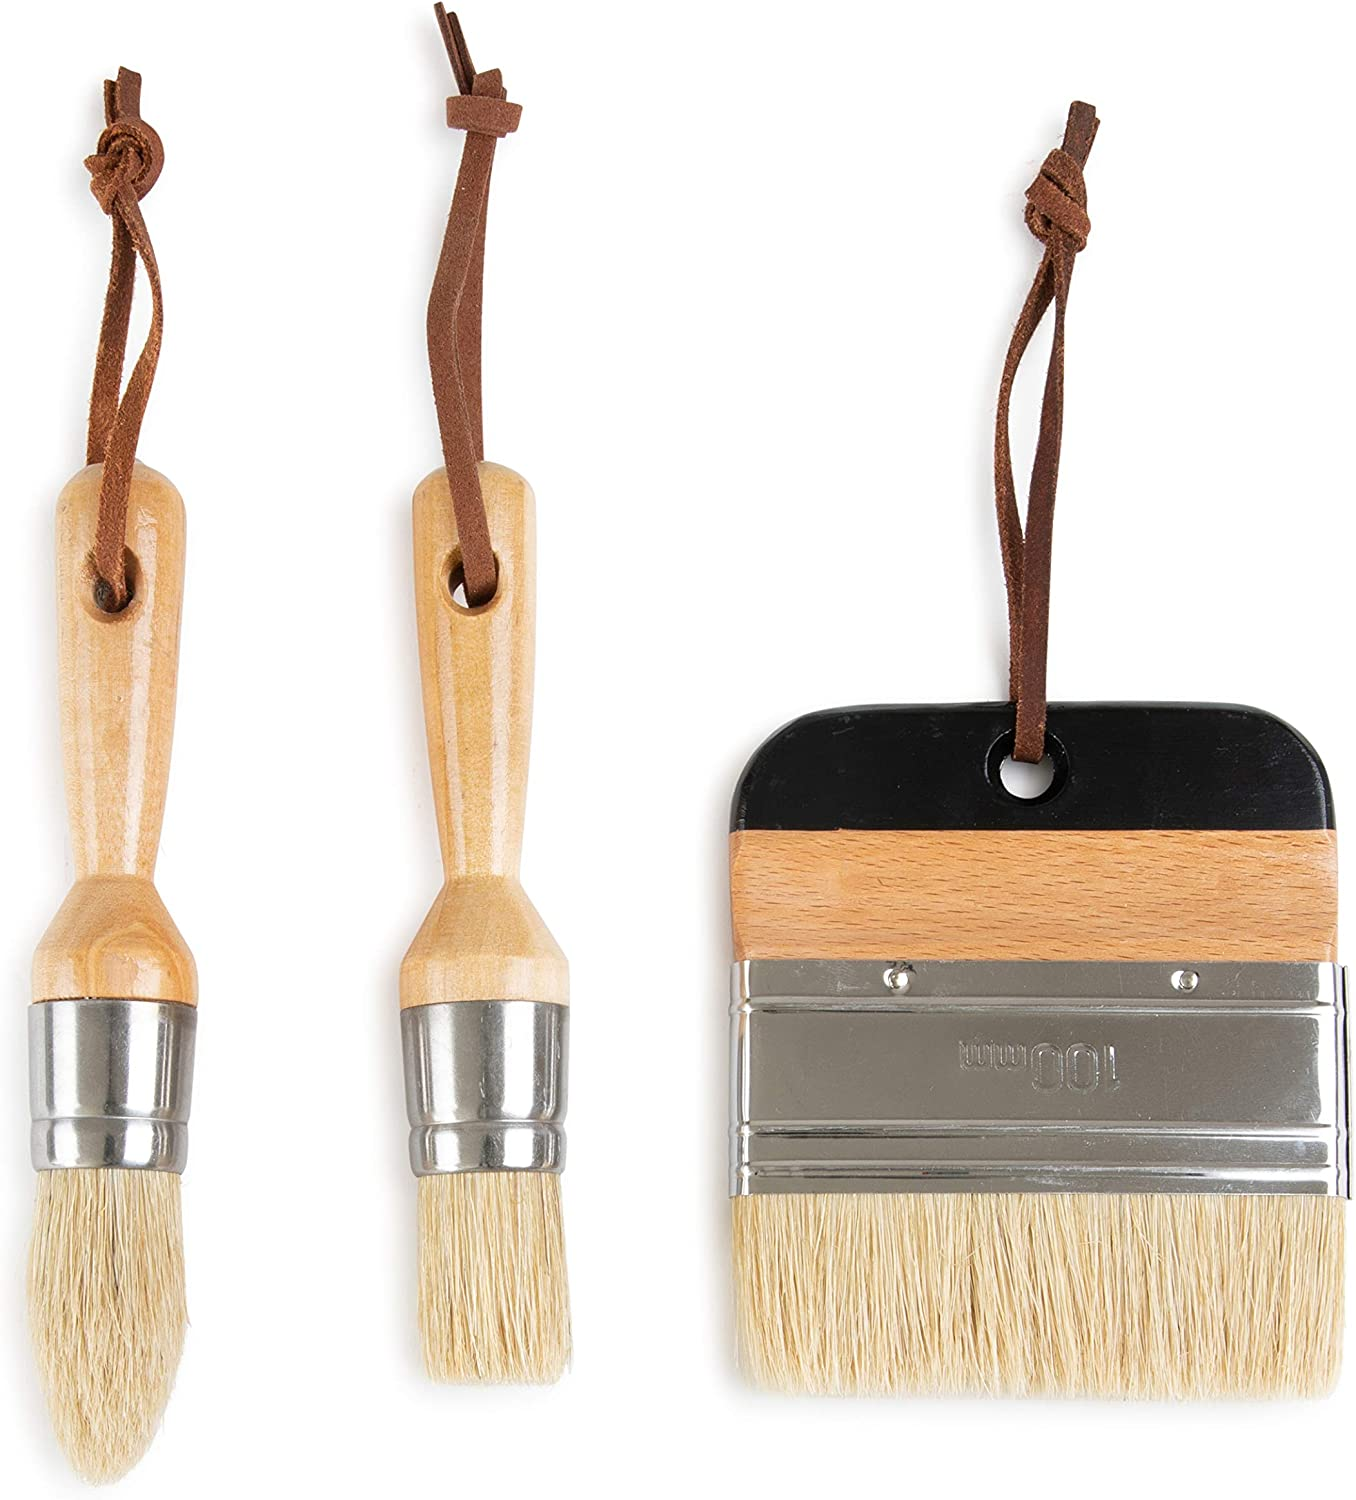 3 Piece Paint Brush Set by DIYARTZ Natural Bristles Perfect Chalk and Wax Paint Thick and Durable